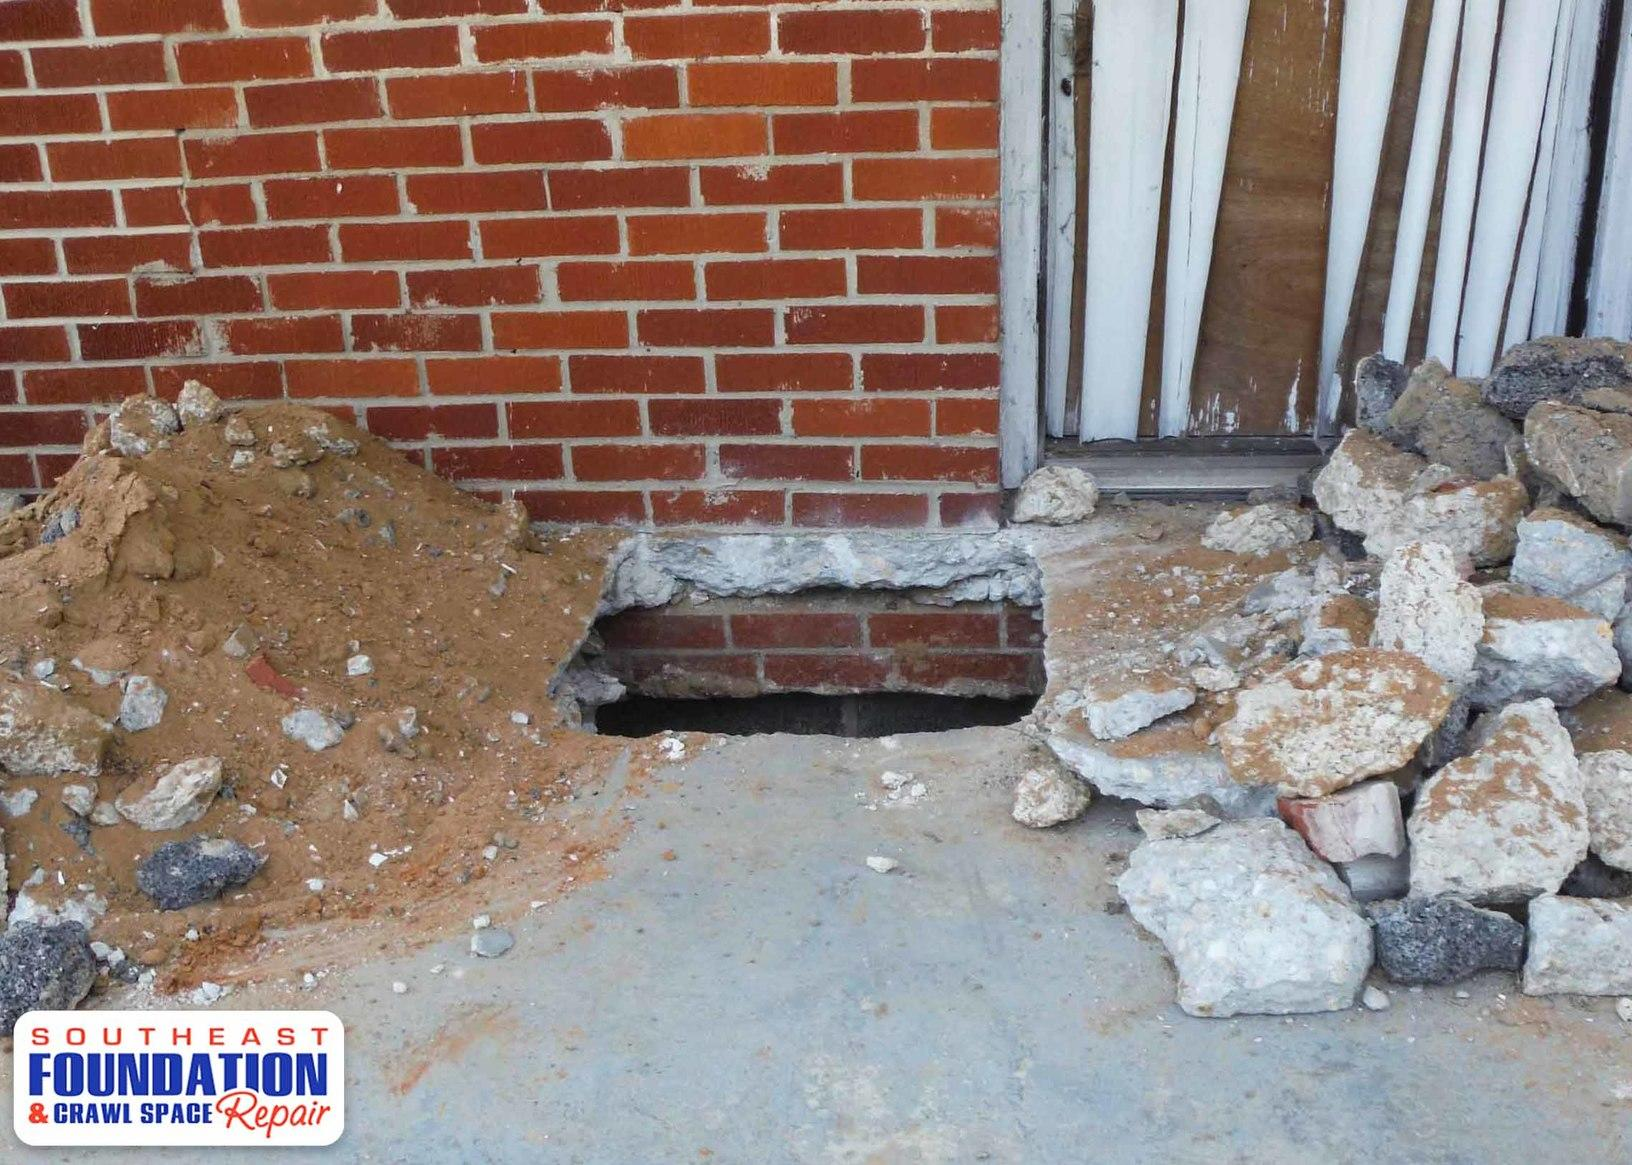 Southeast Foundation Crawl Space Repair Foundation Repair Photo Album Lifting A Sinking Foundation In Ether Nc